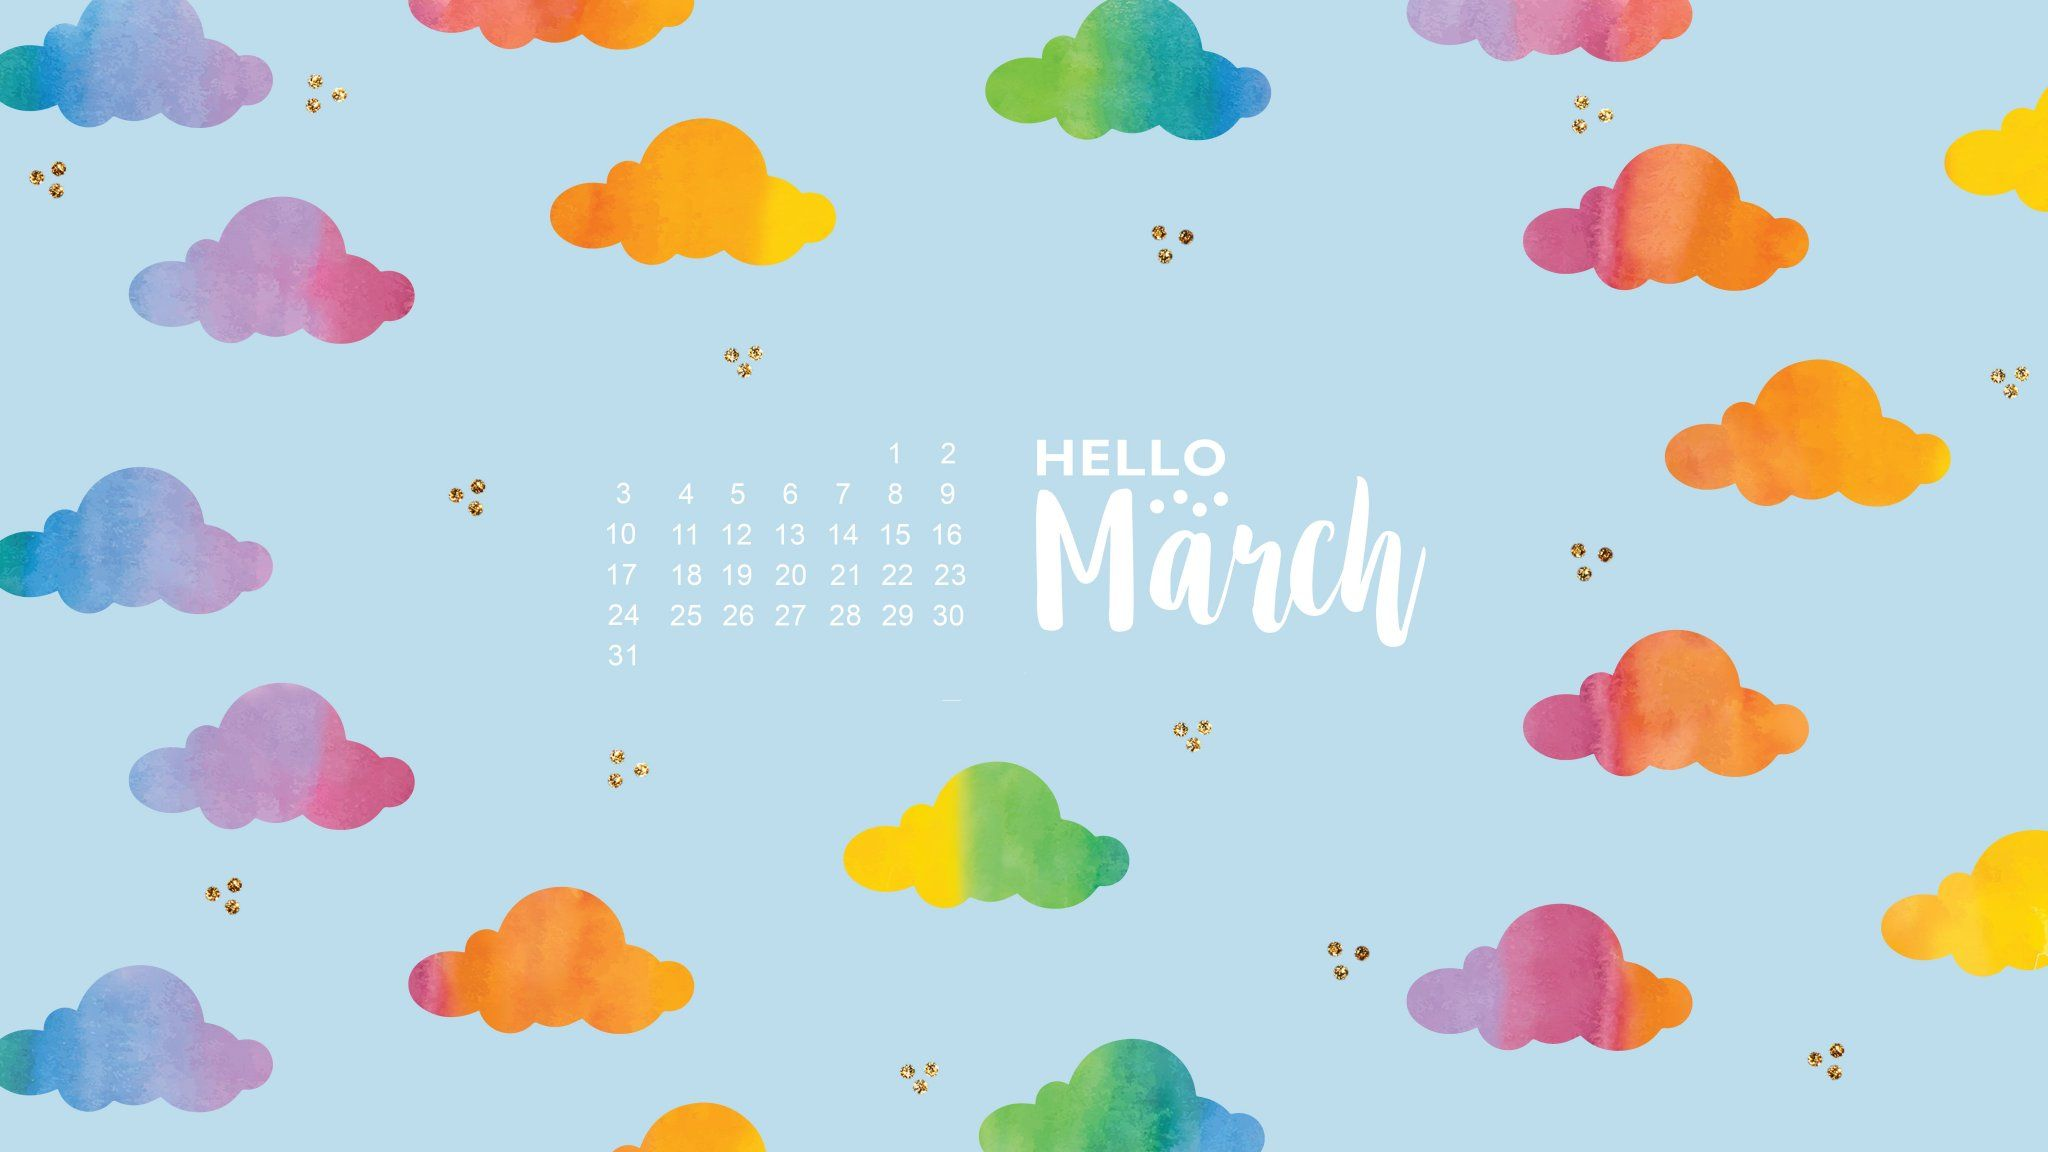 March 2019 Calendar Desktop Wallpapers Calendar